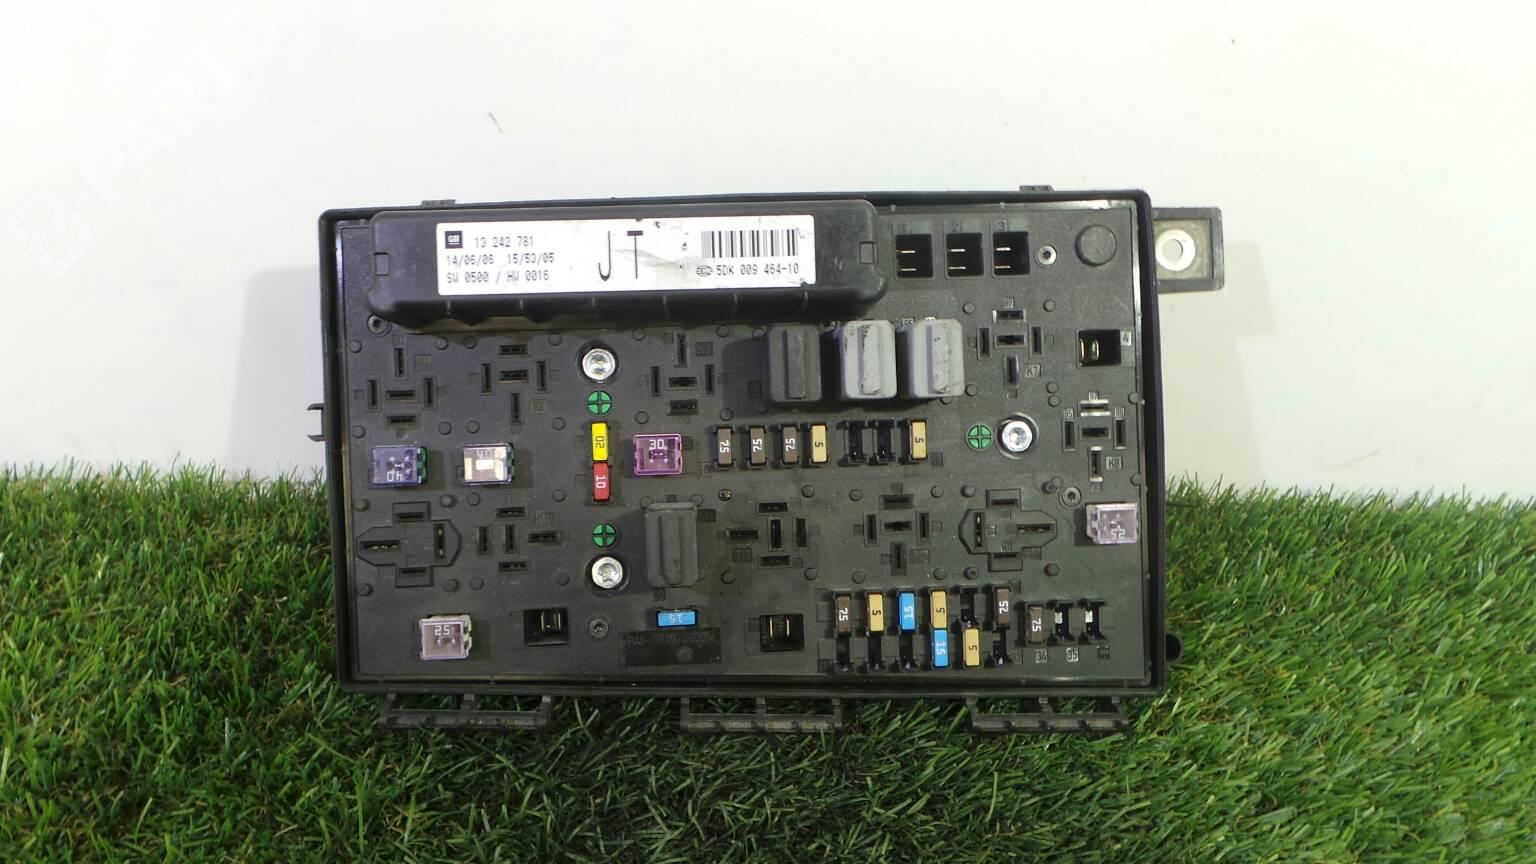 hight resolution of fuse box 13 242 781 opel zafira b a05 1 9 cdti m75